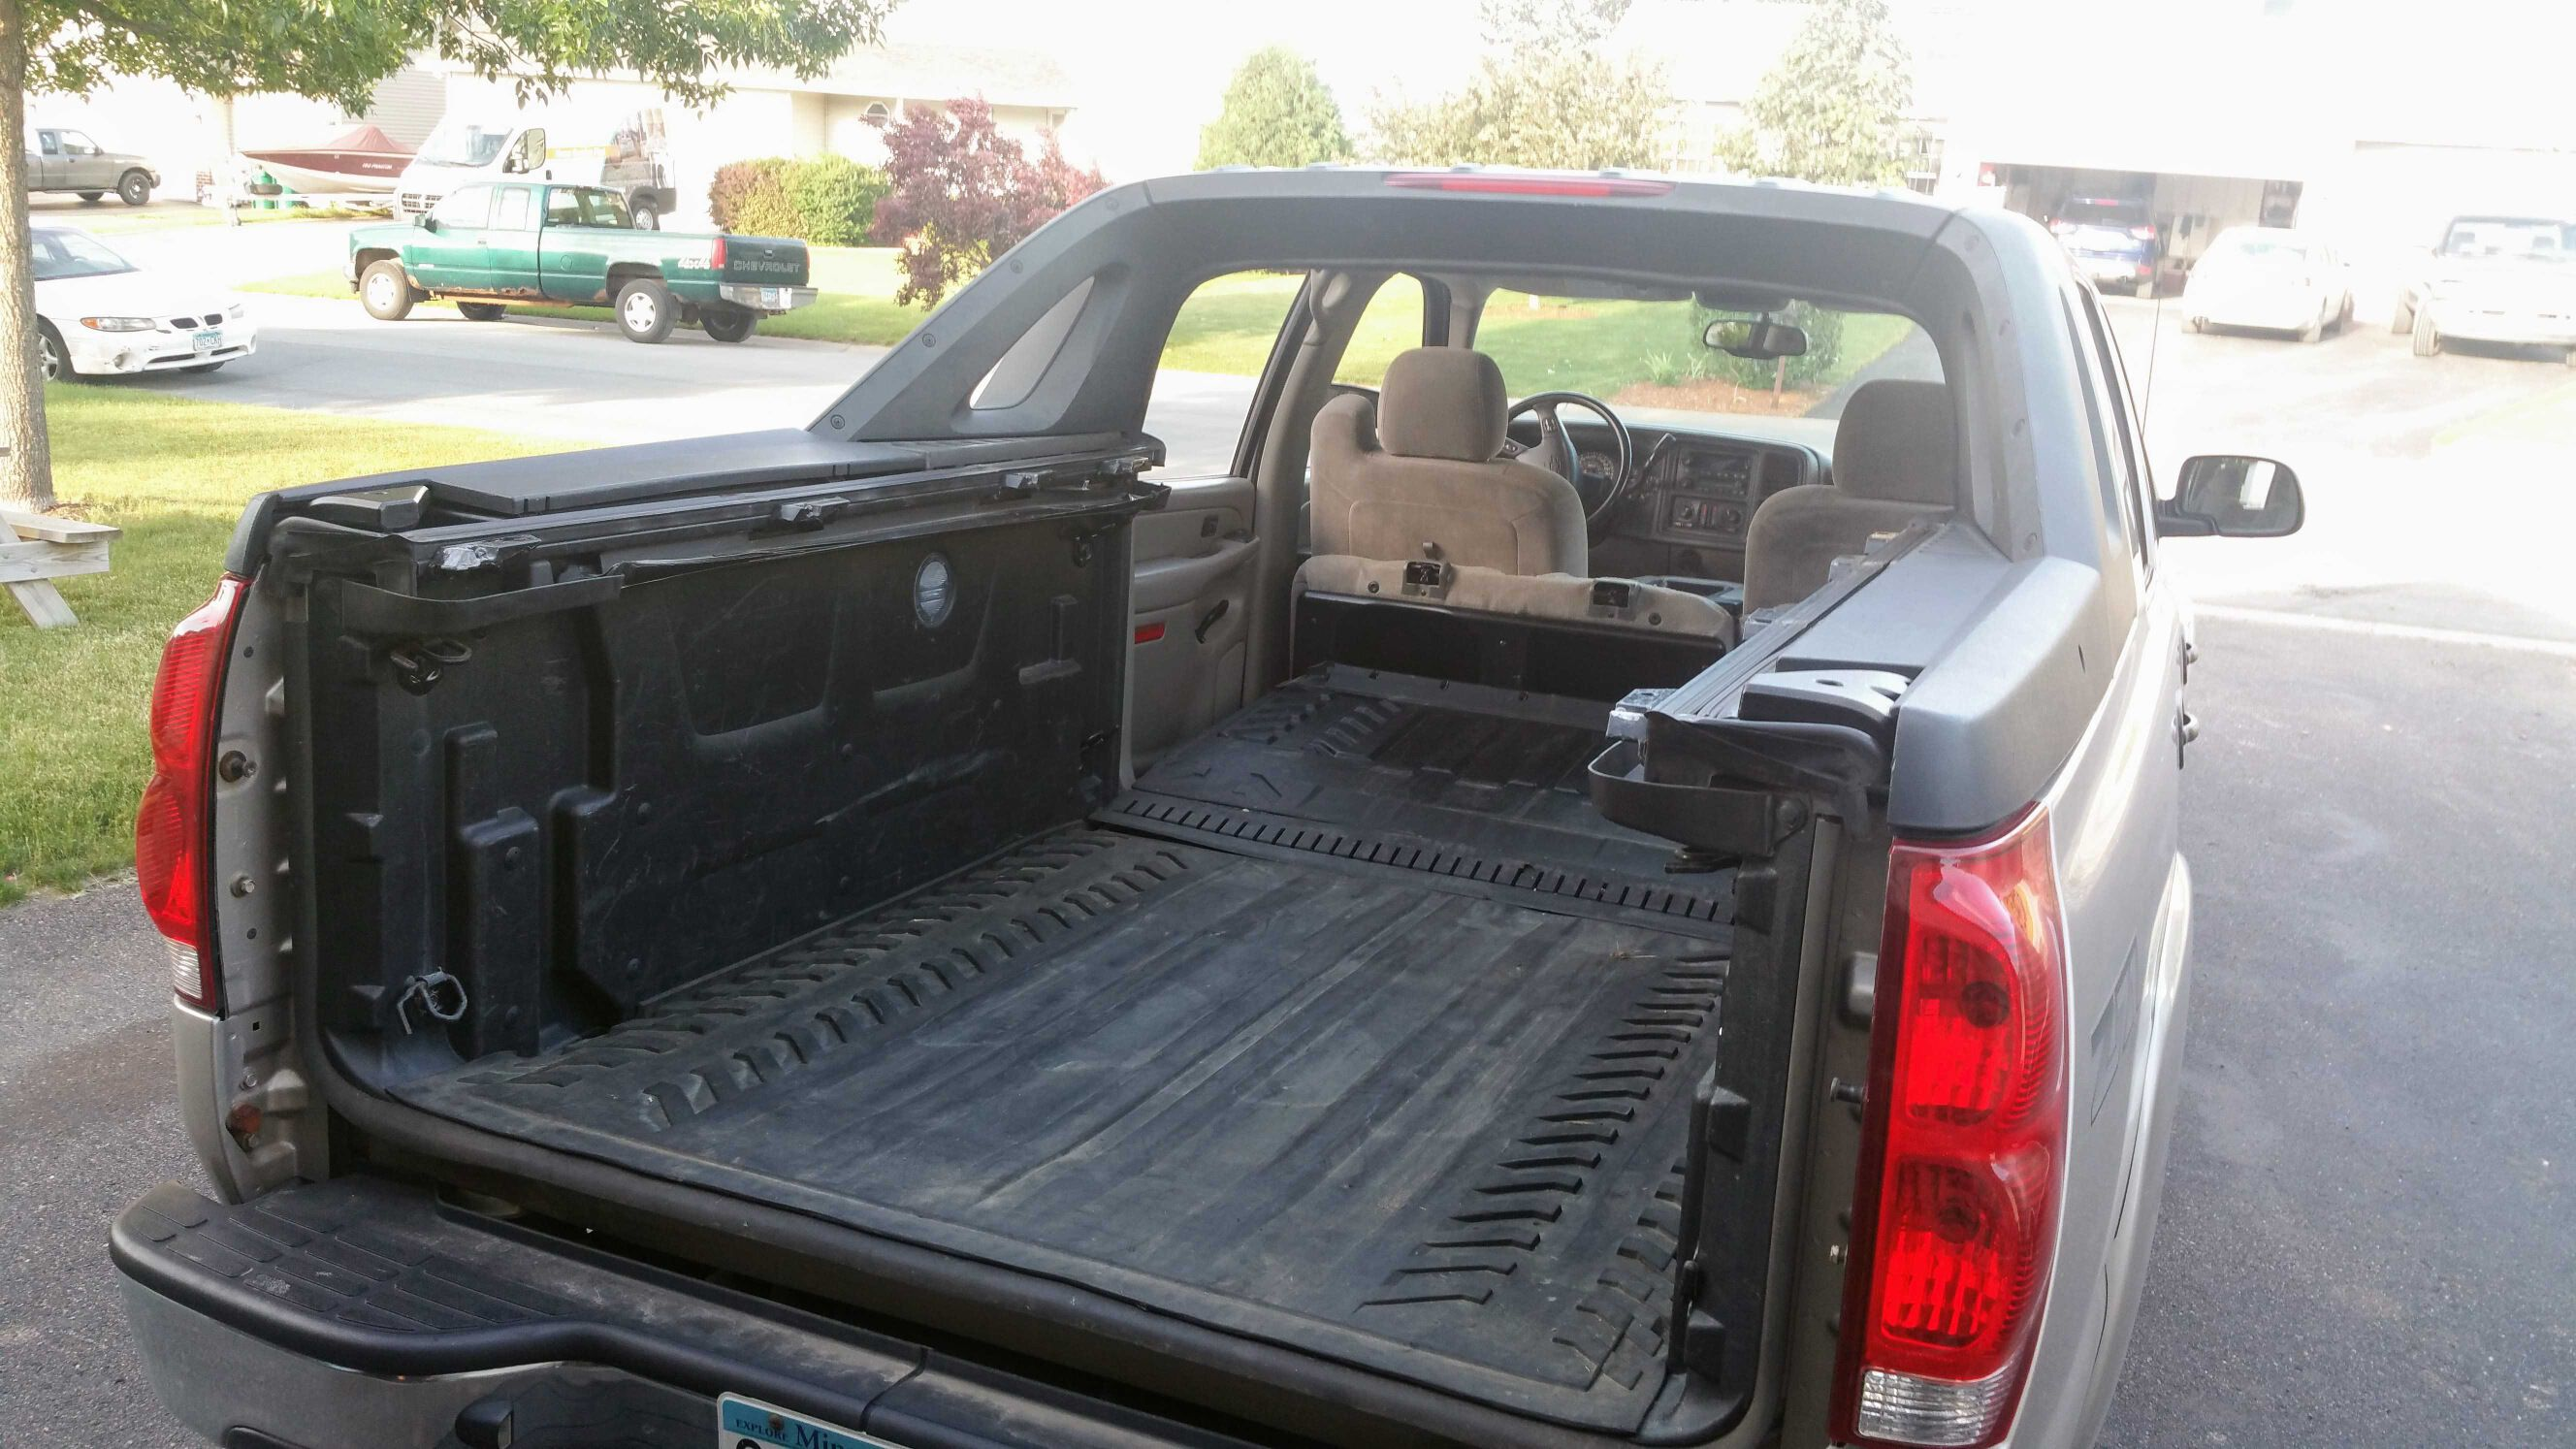 2005 Avalanche With All Panels Removed And Midgate Down Chevy Avalanche Avalanche Cars Trucks